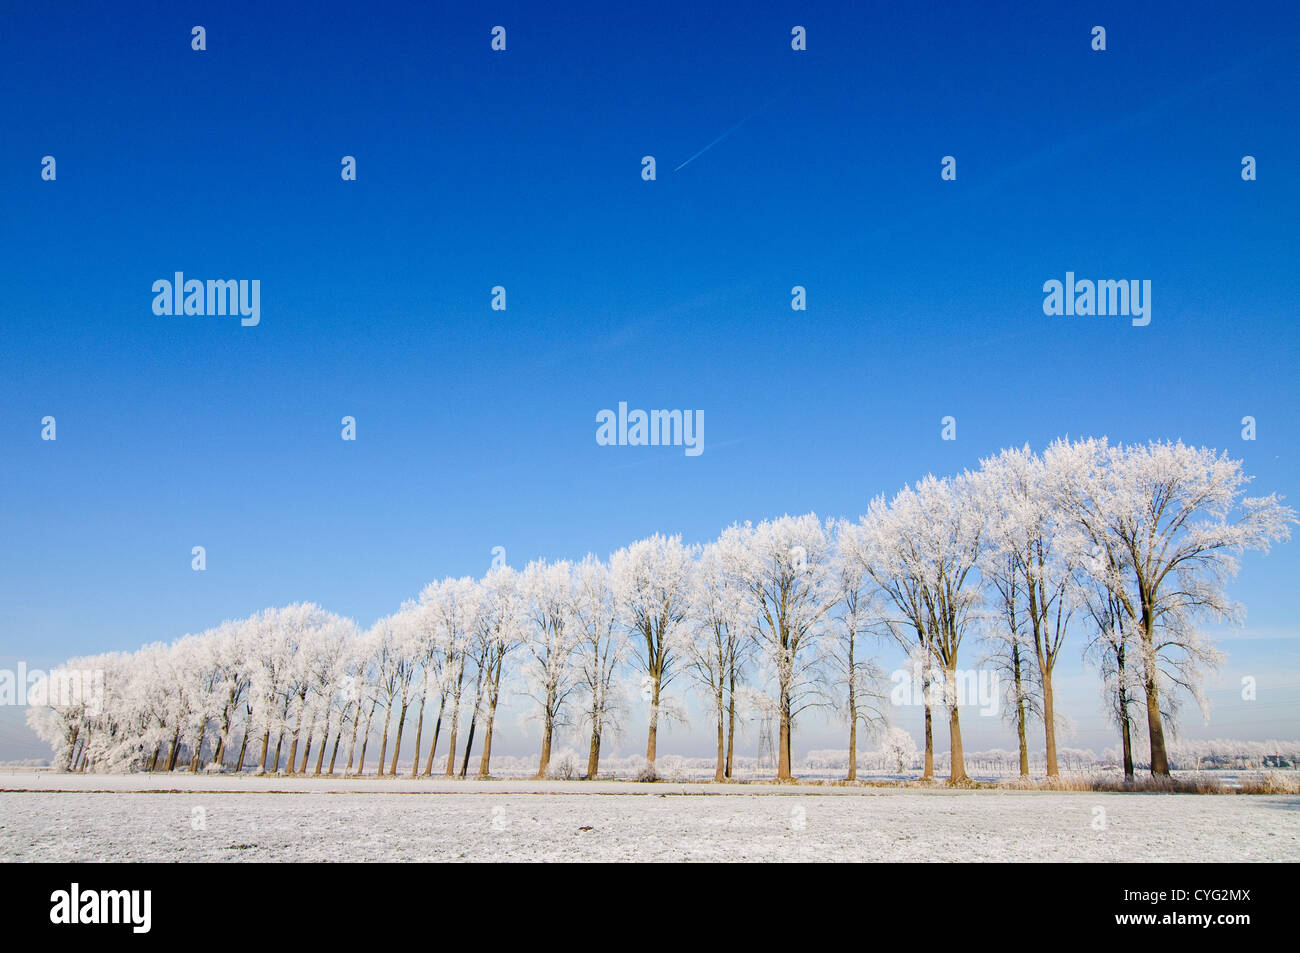 Winter landscape with a row of poplar trees covered in frost and a clear blue sky Stock Photo